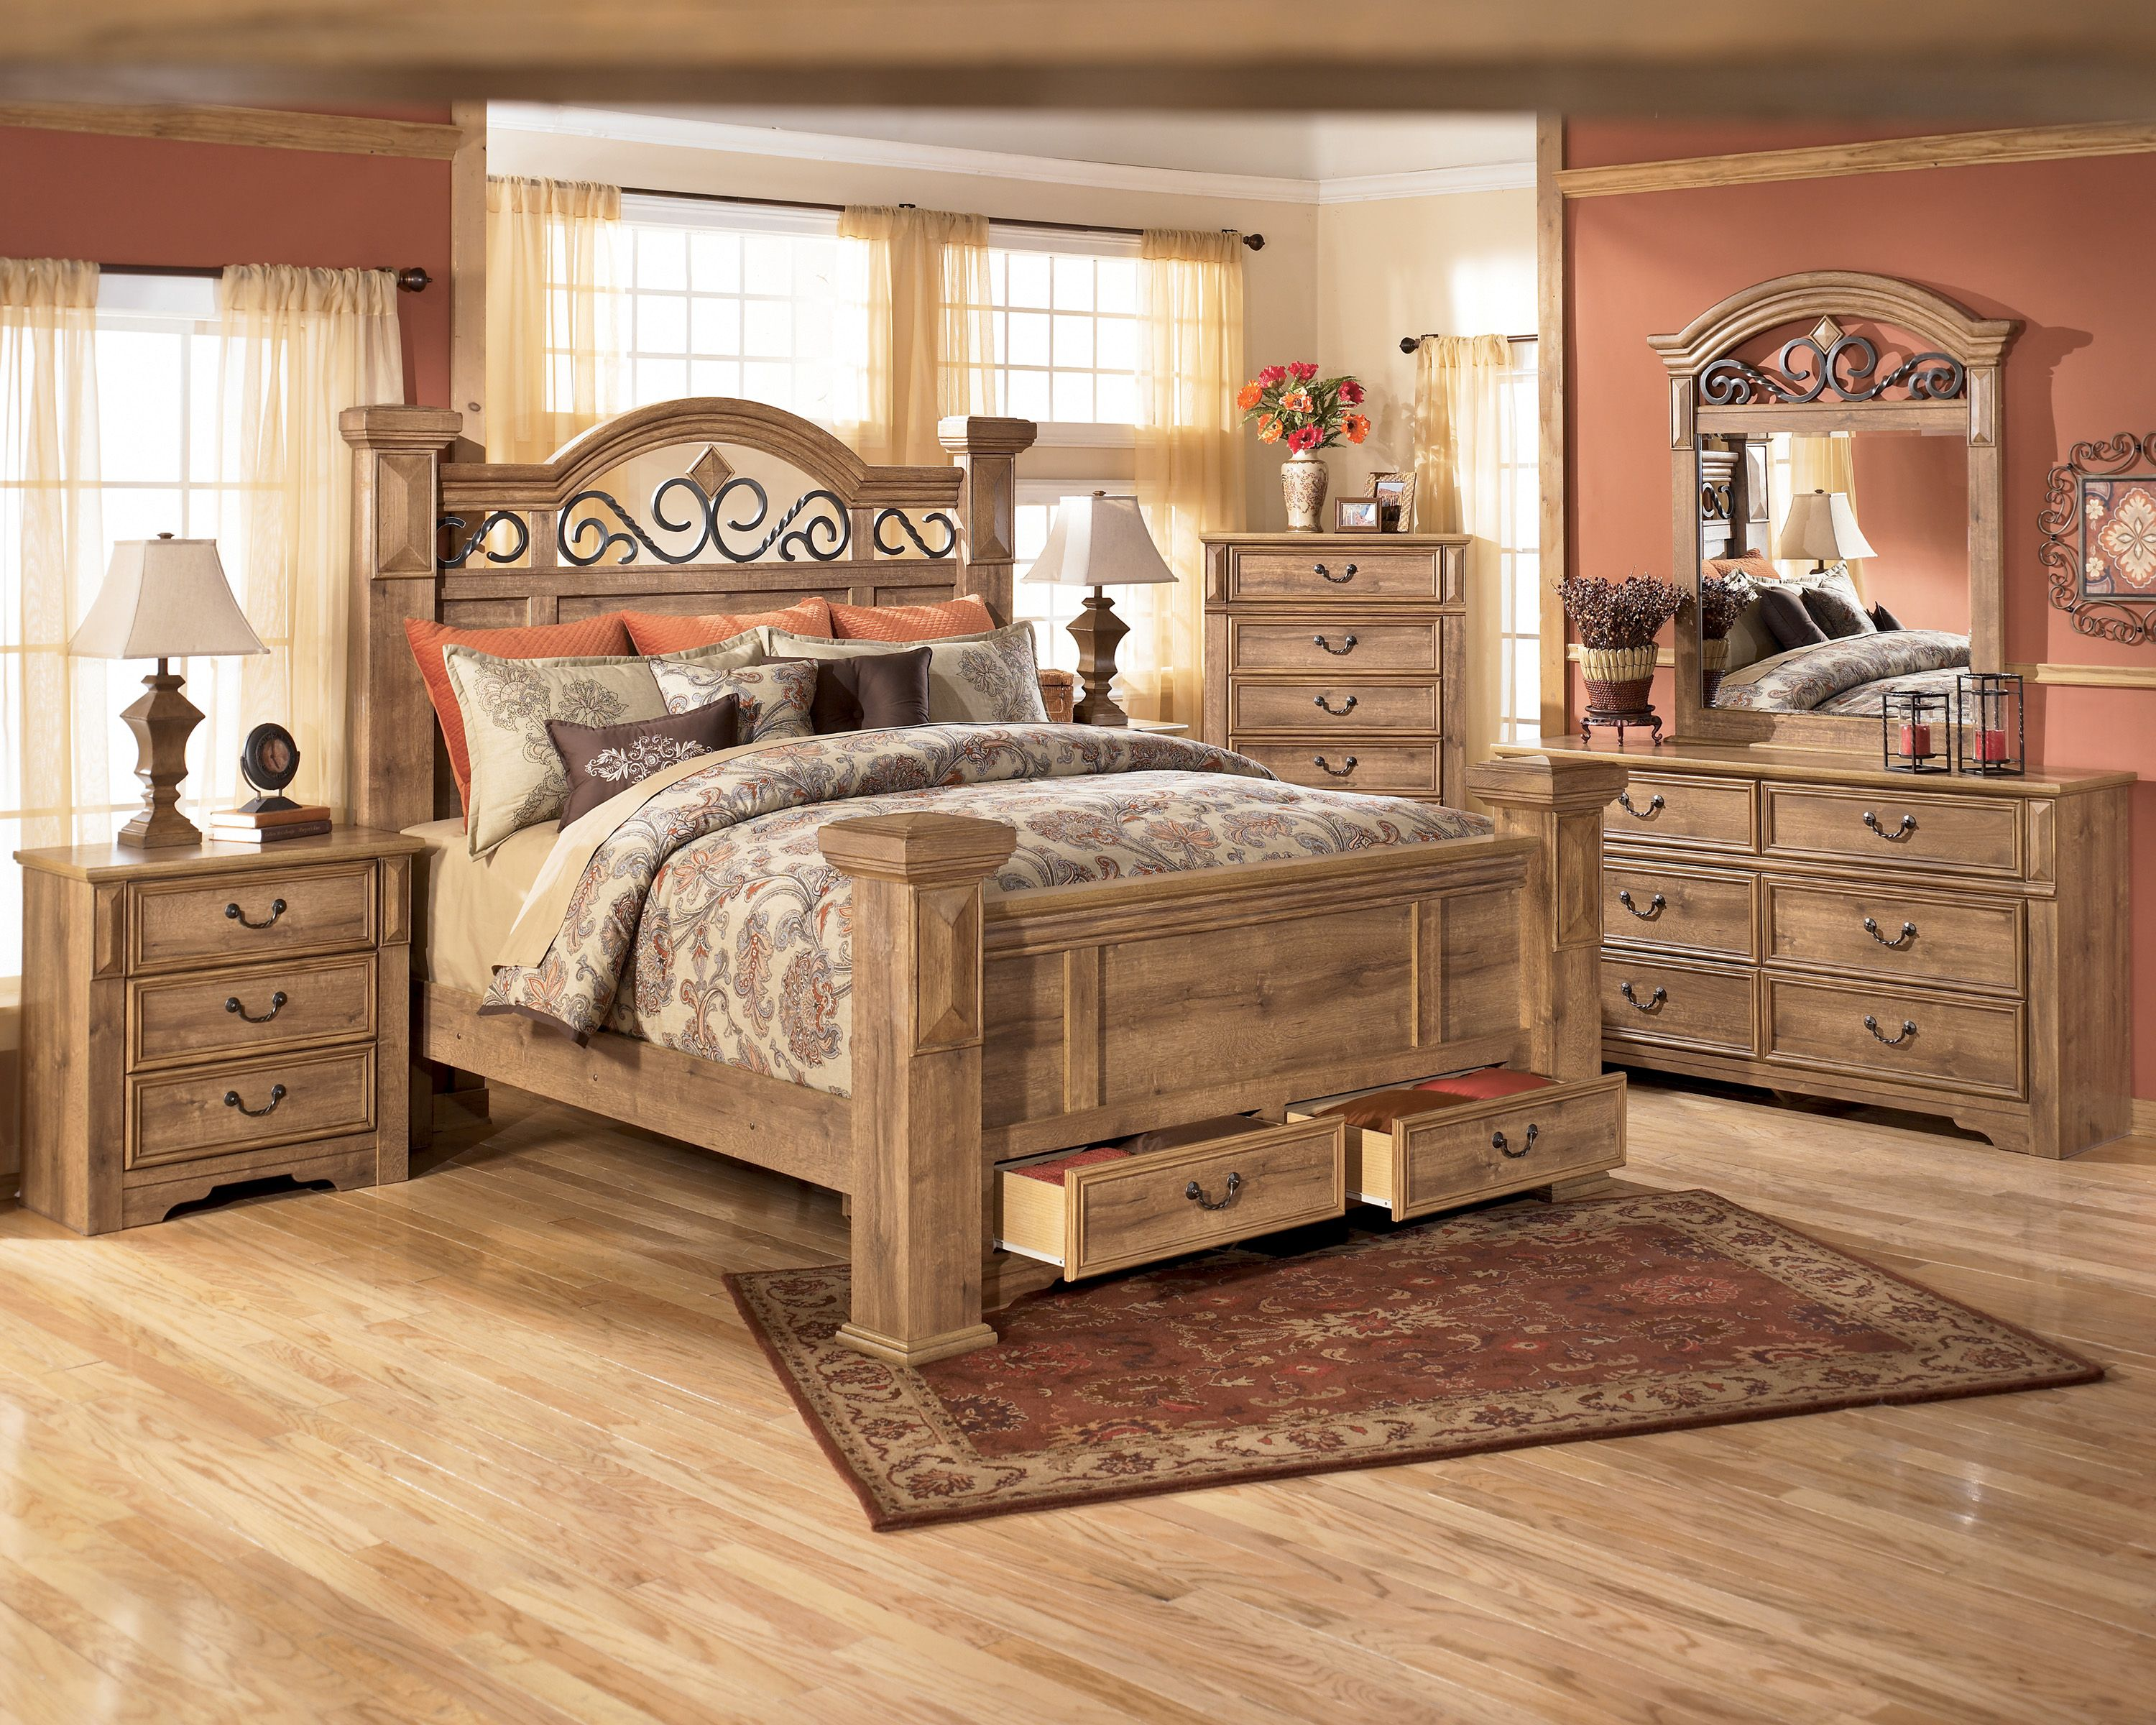 Impressive King Size Bedroom Furniture Sets Property